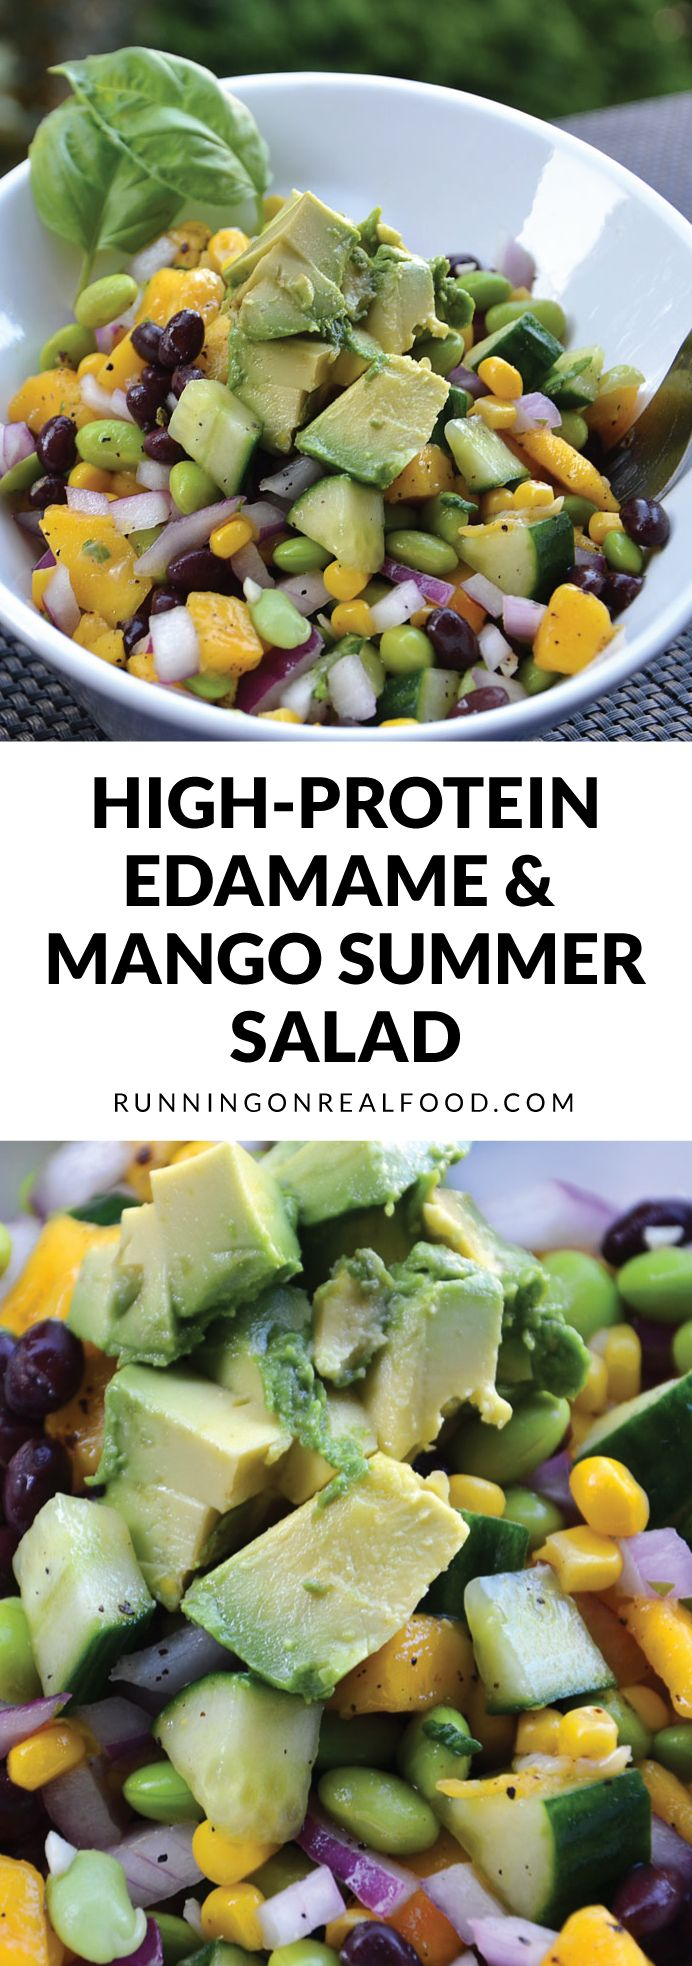 Best 25 high protein vegetarian recipes ideas on pinterest high this high protein edamame mango salad is easy to make fresh tangy high protien vegetarian mealshigh forumfinder Images